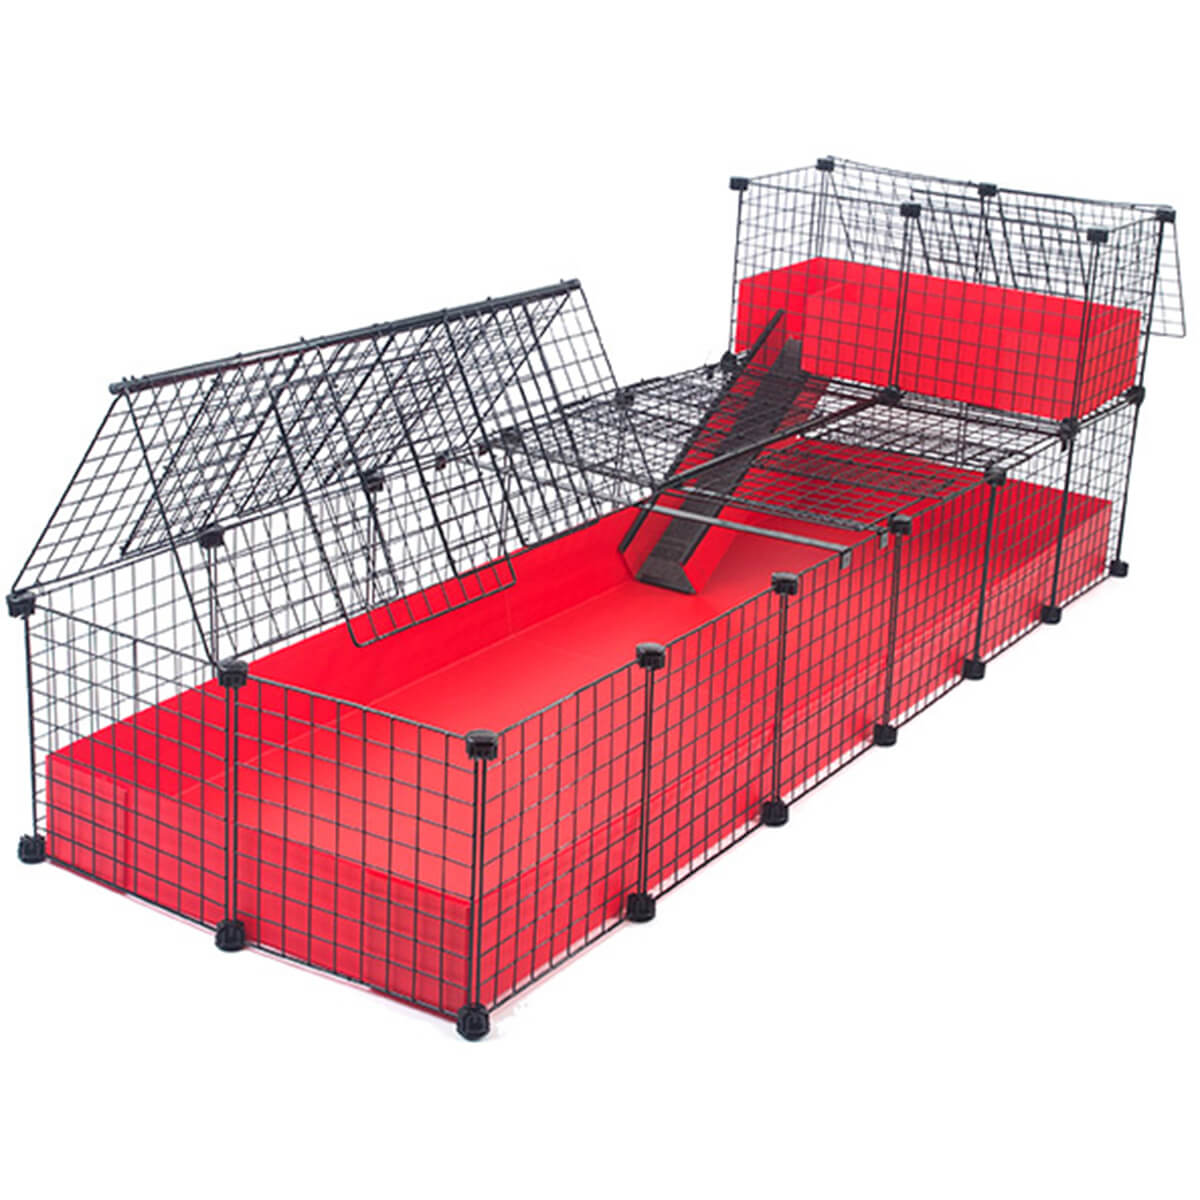 Jumbo with narrow loft covered deluxe covered cages c for Build your own guinea pig cage